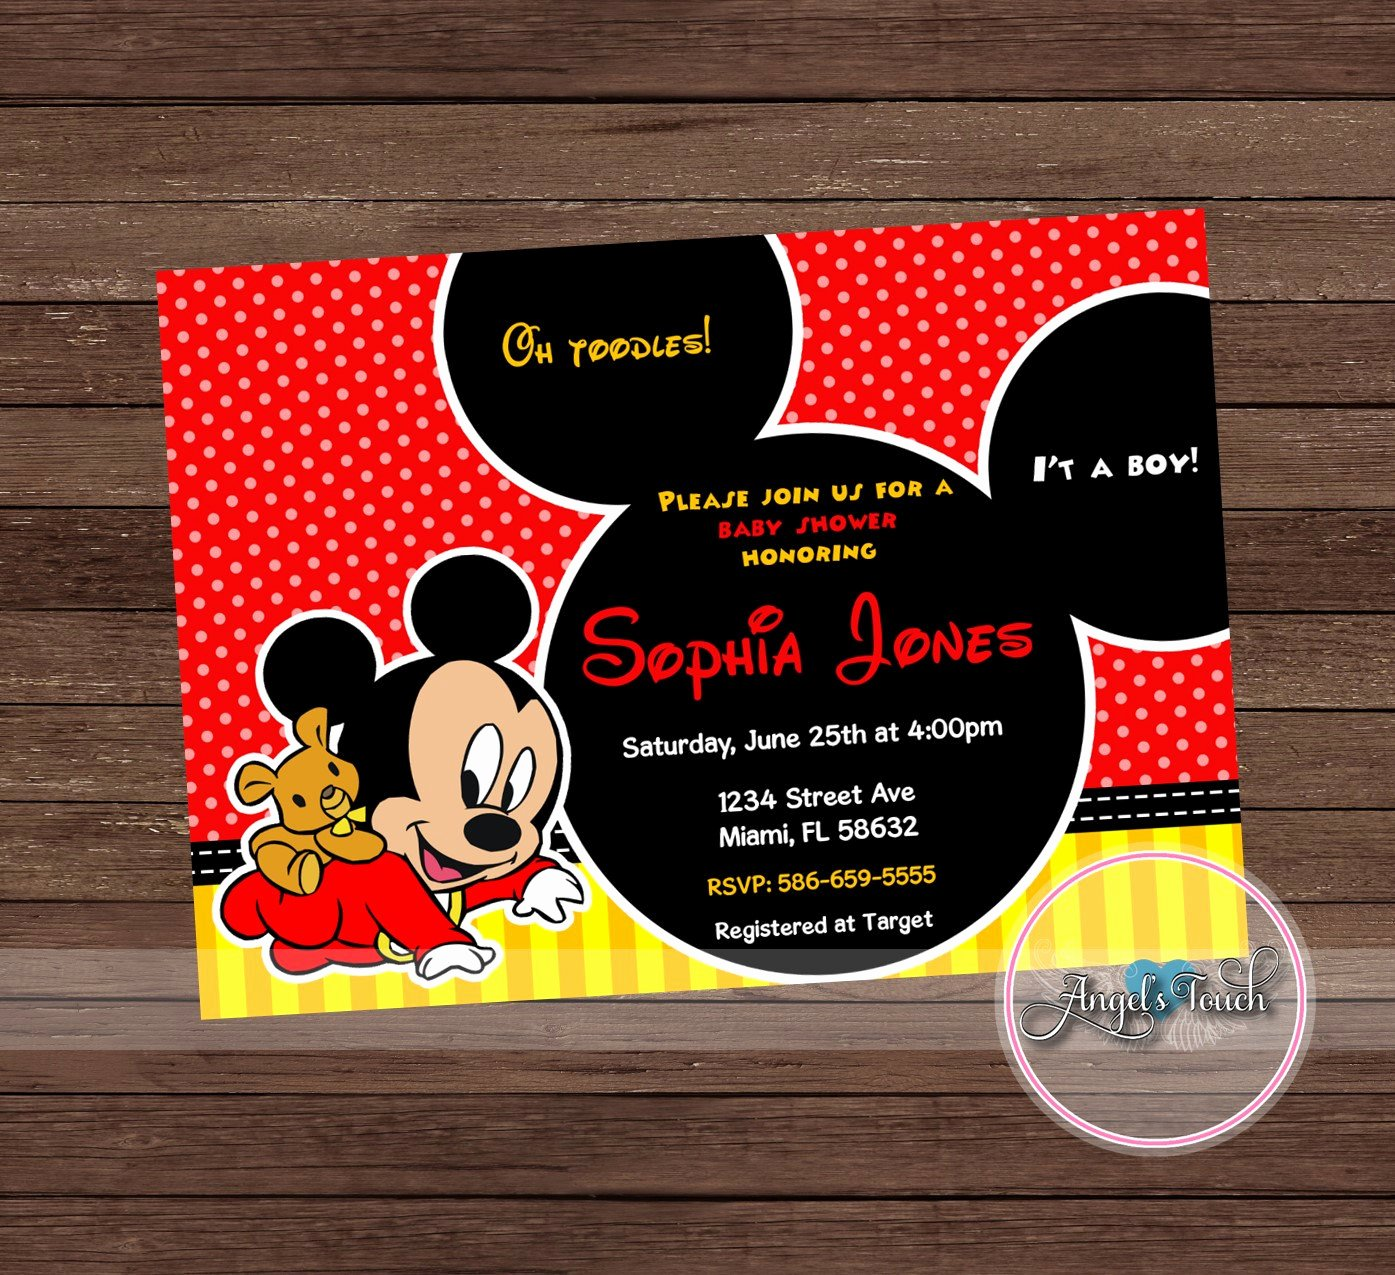 Mickey Mouse Baby Shower Invitation Luxury Mickey Mouse Baby Shower Invitation Mickey Mouse Baby